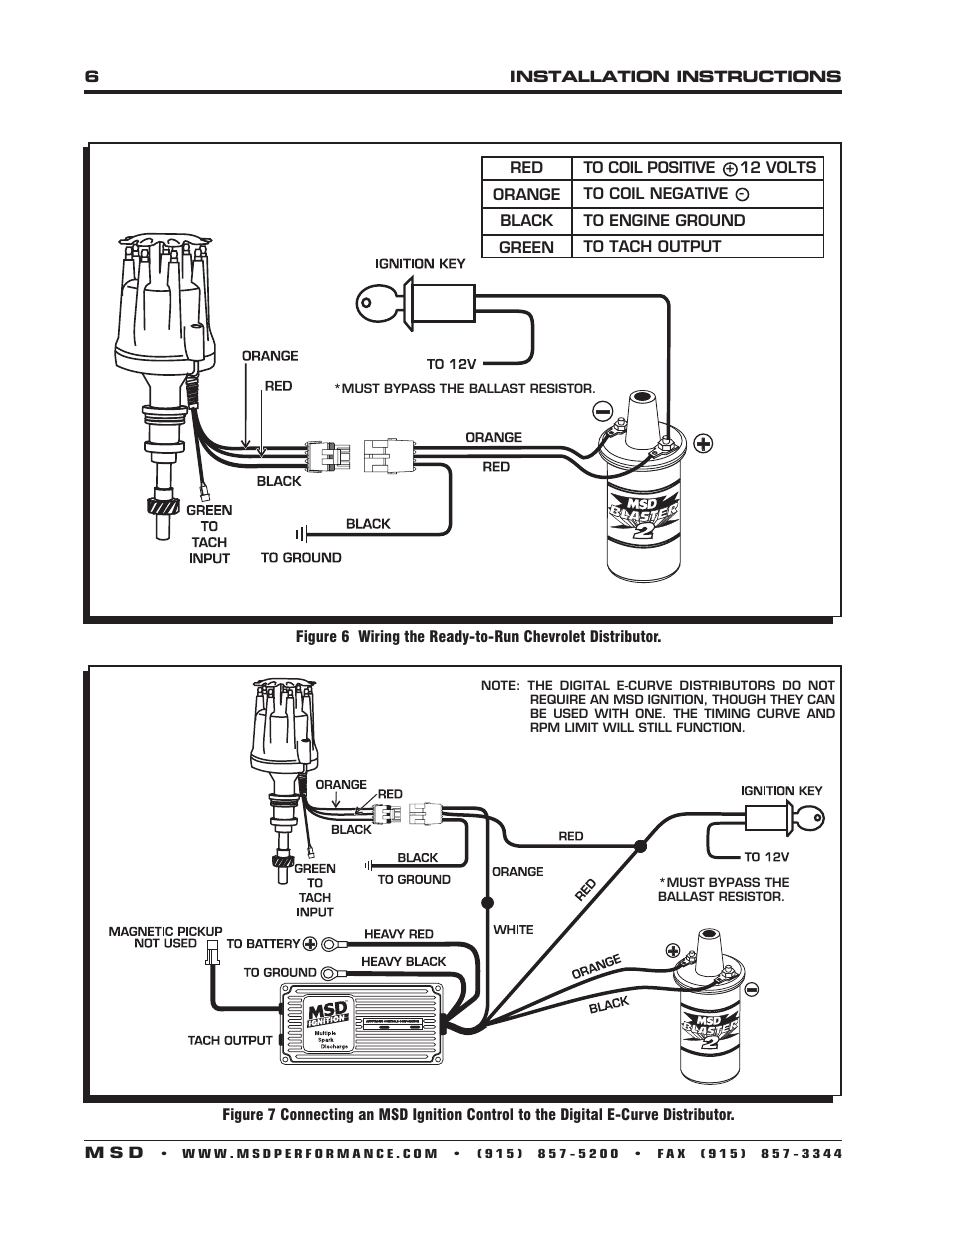 Msd Ford E Curve Pro Billet Distributor Installation Page on 1979 Ford Truck Wiring Diagram